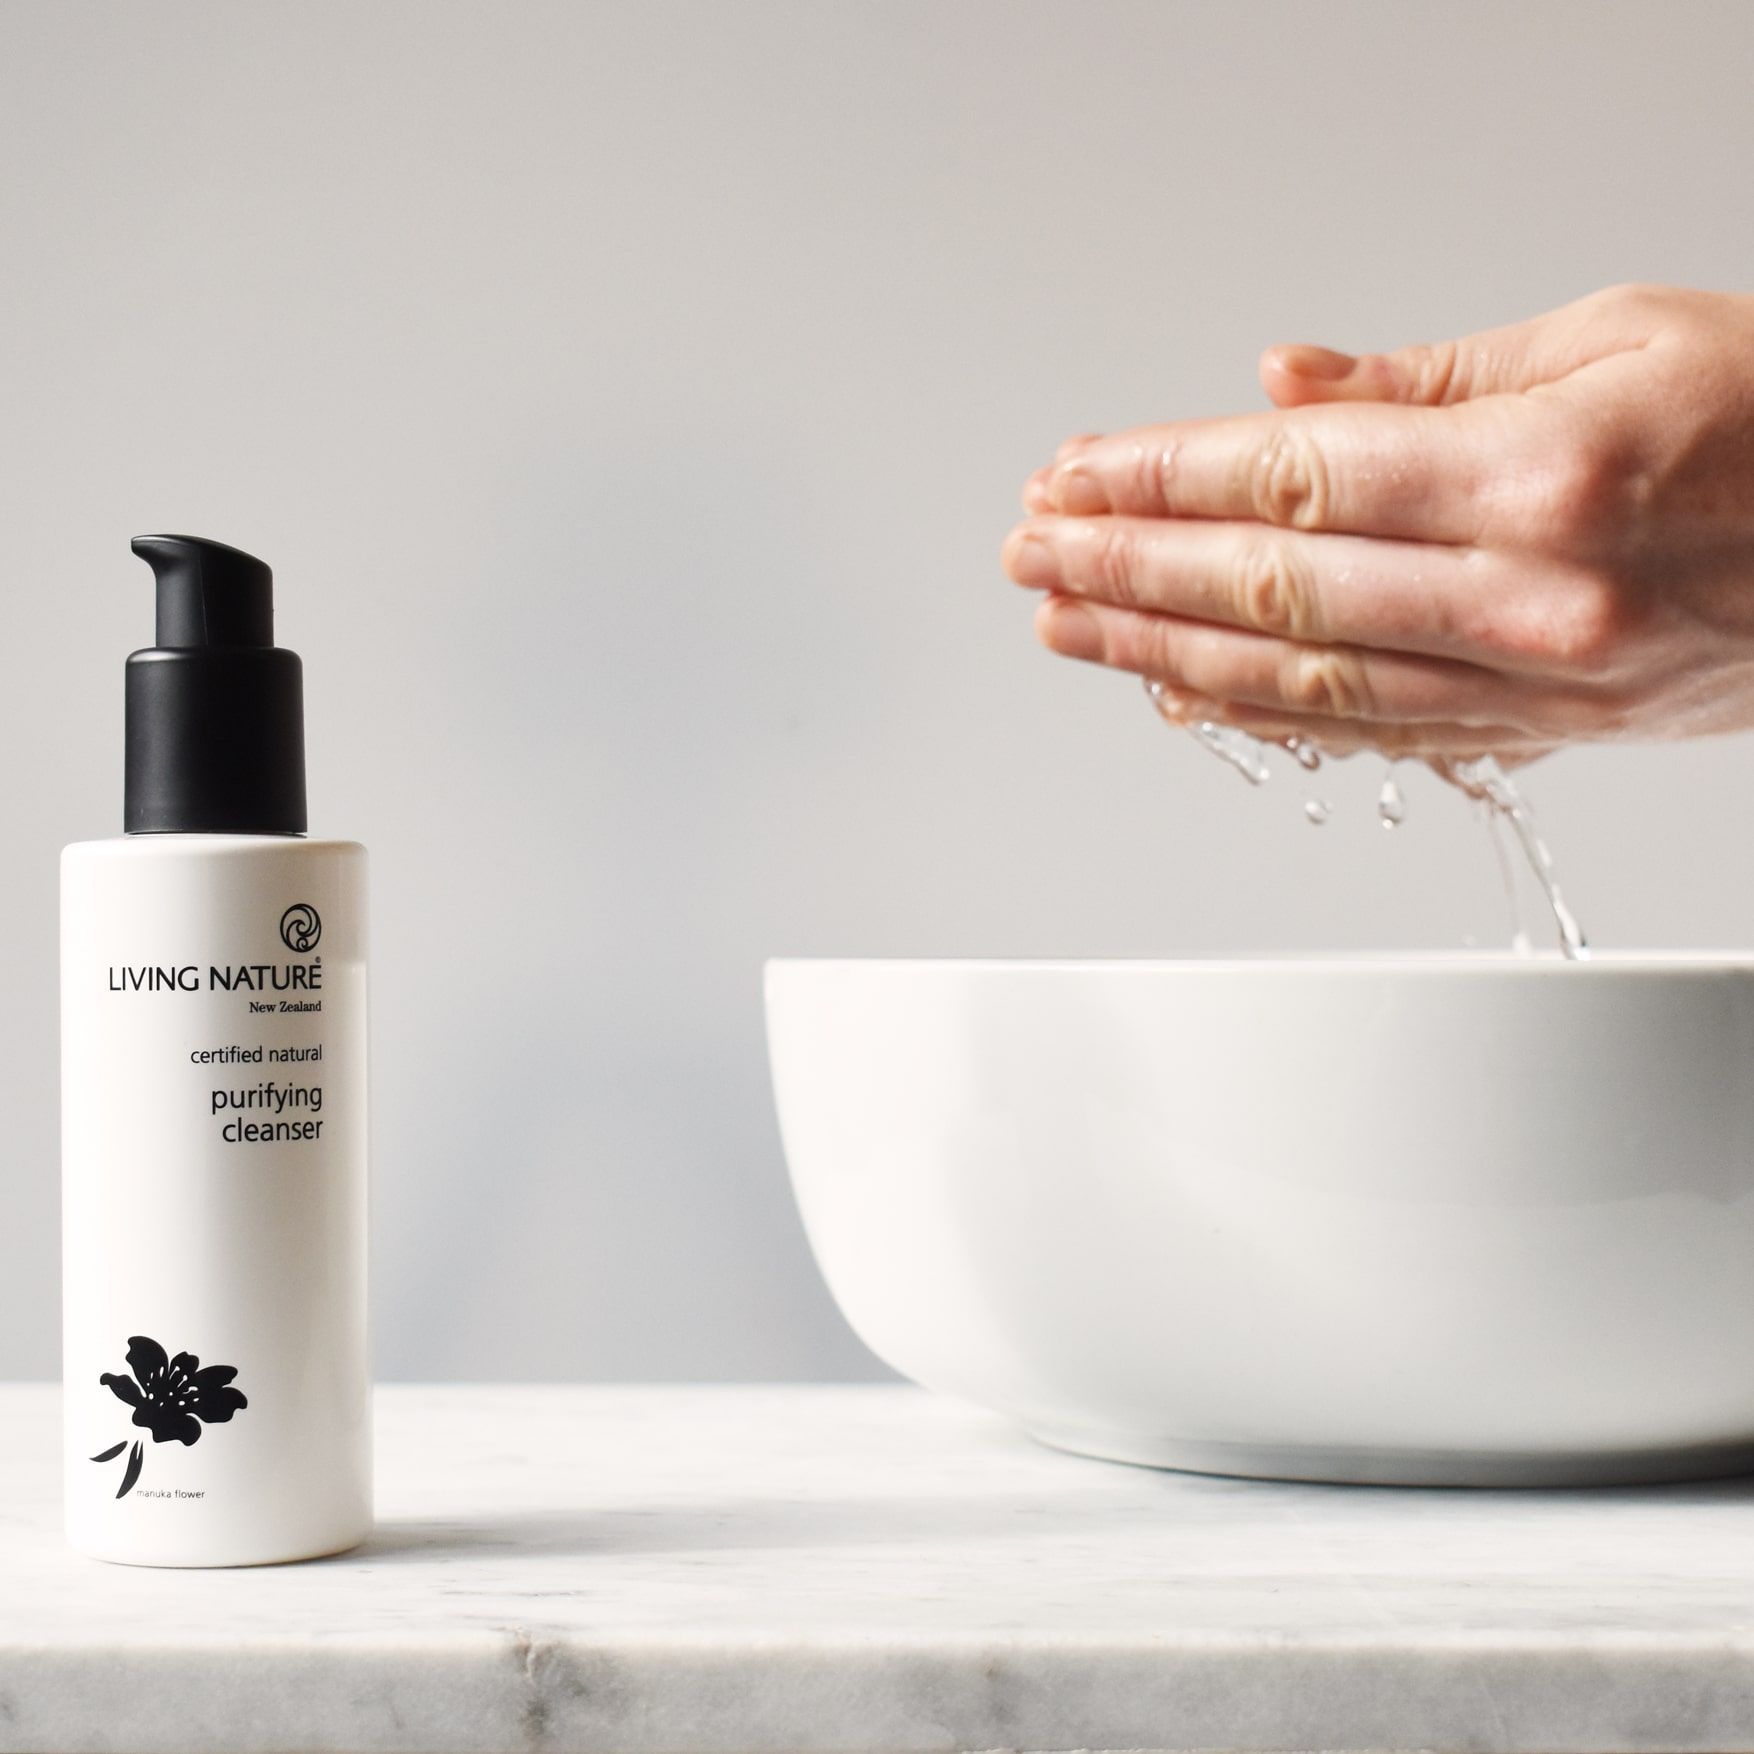 Sữa rửa mặt Purifying Cleanser Living Nature 6